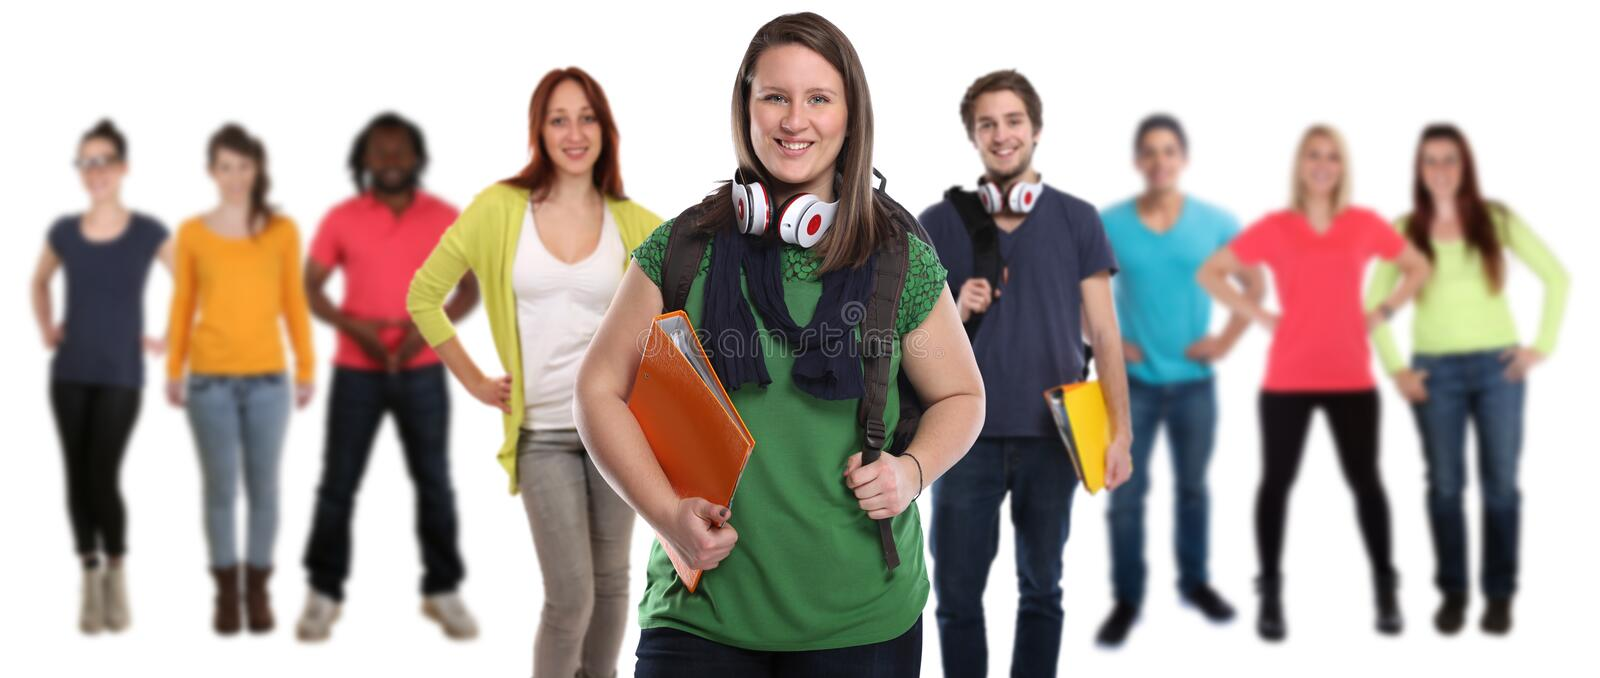 Group of students smiling happy people isolated stock image